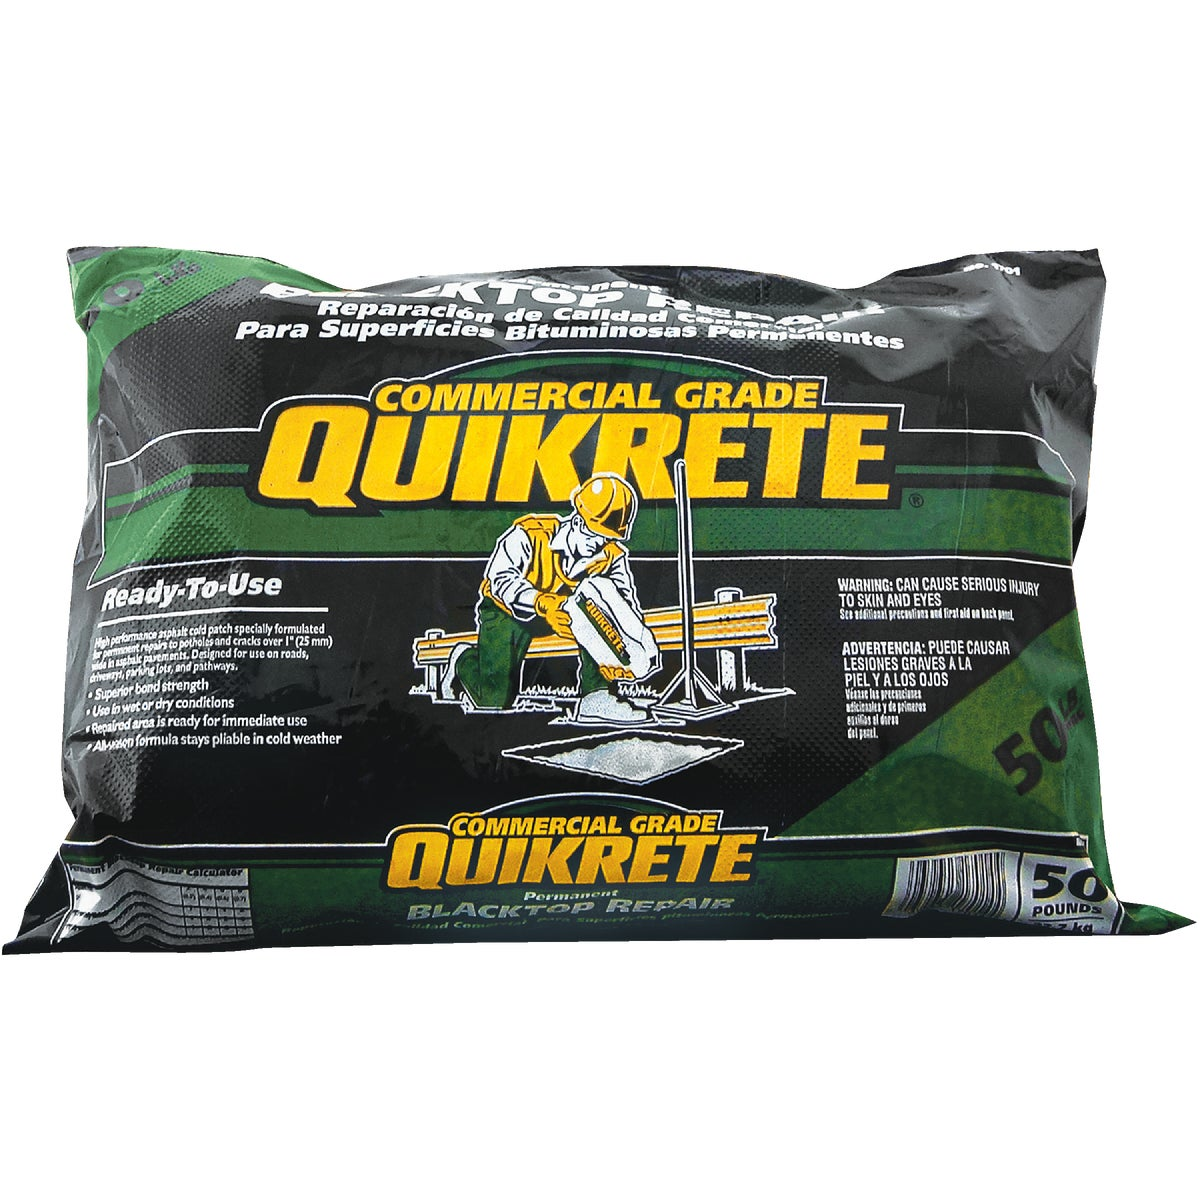 Quikrete 50LB BLACKTOP PATCH 1701-52